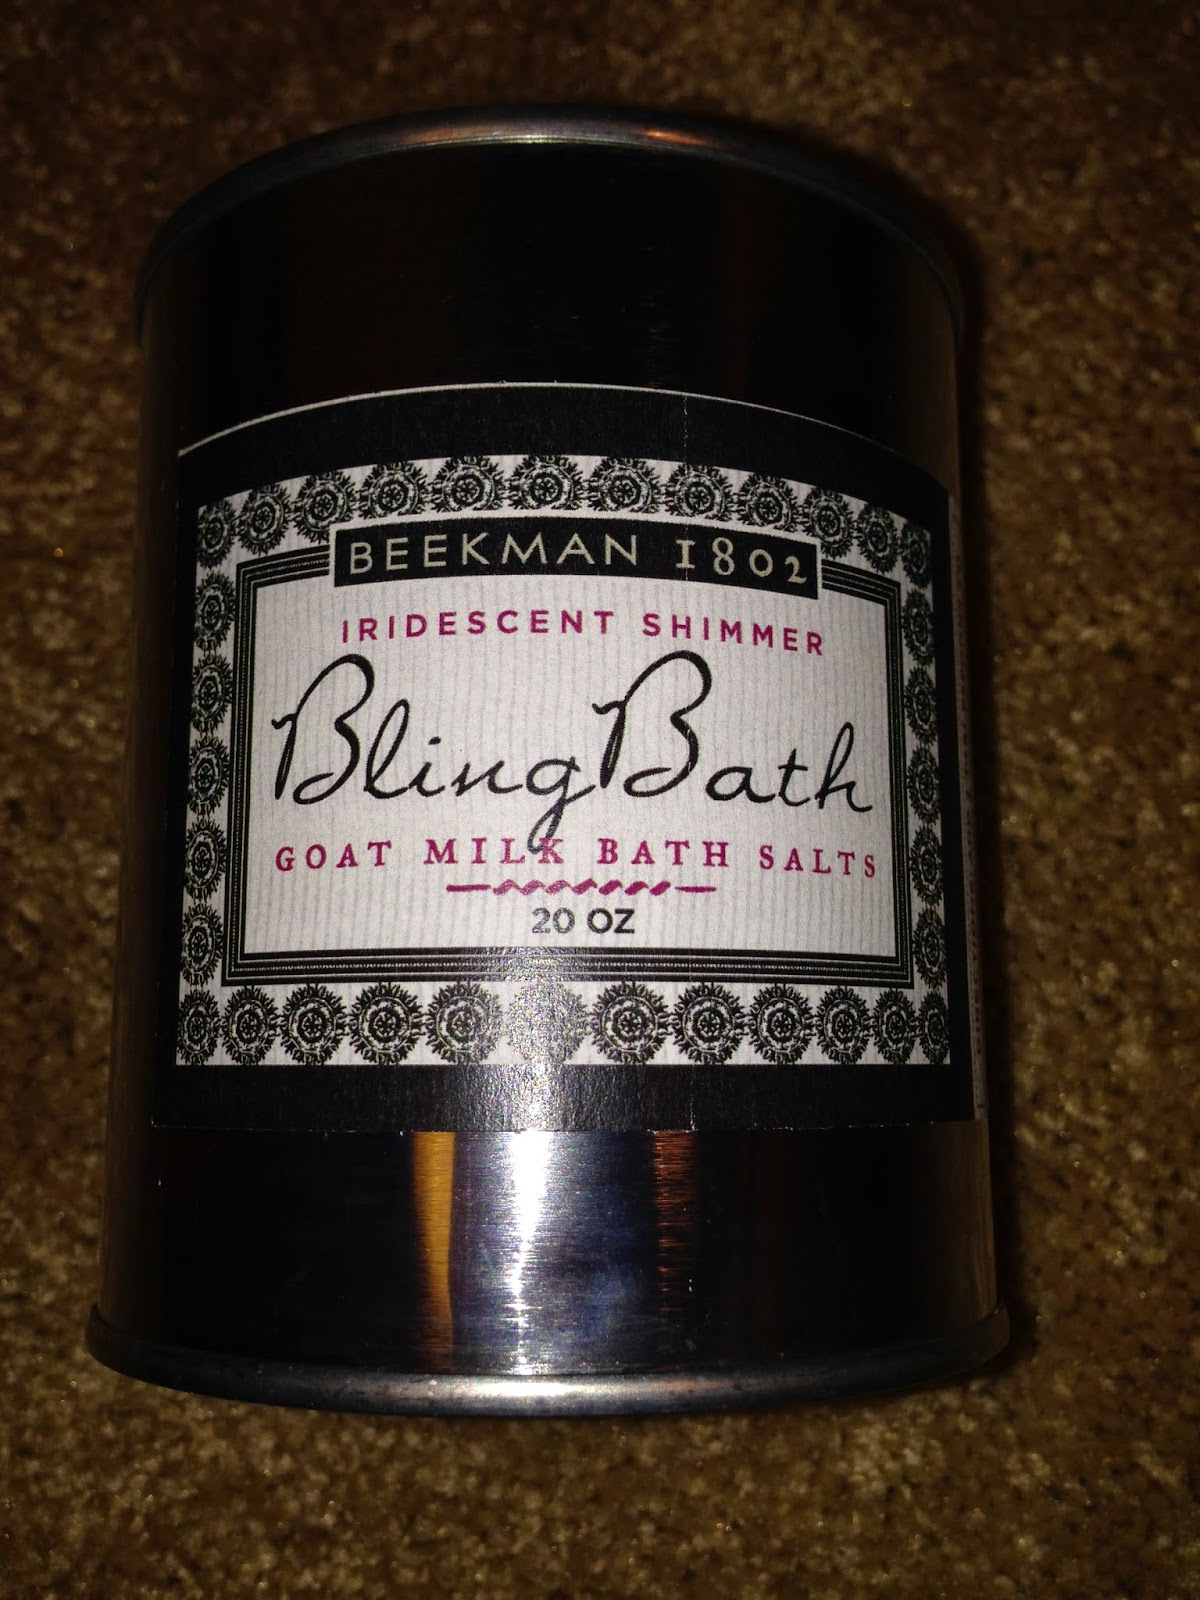 http://shop.beekman1802.com/collections/natural-skin-care-products/products/bling-bath?variant=386108280